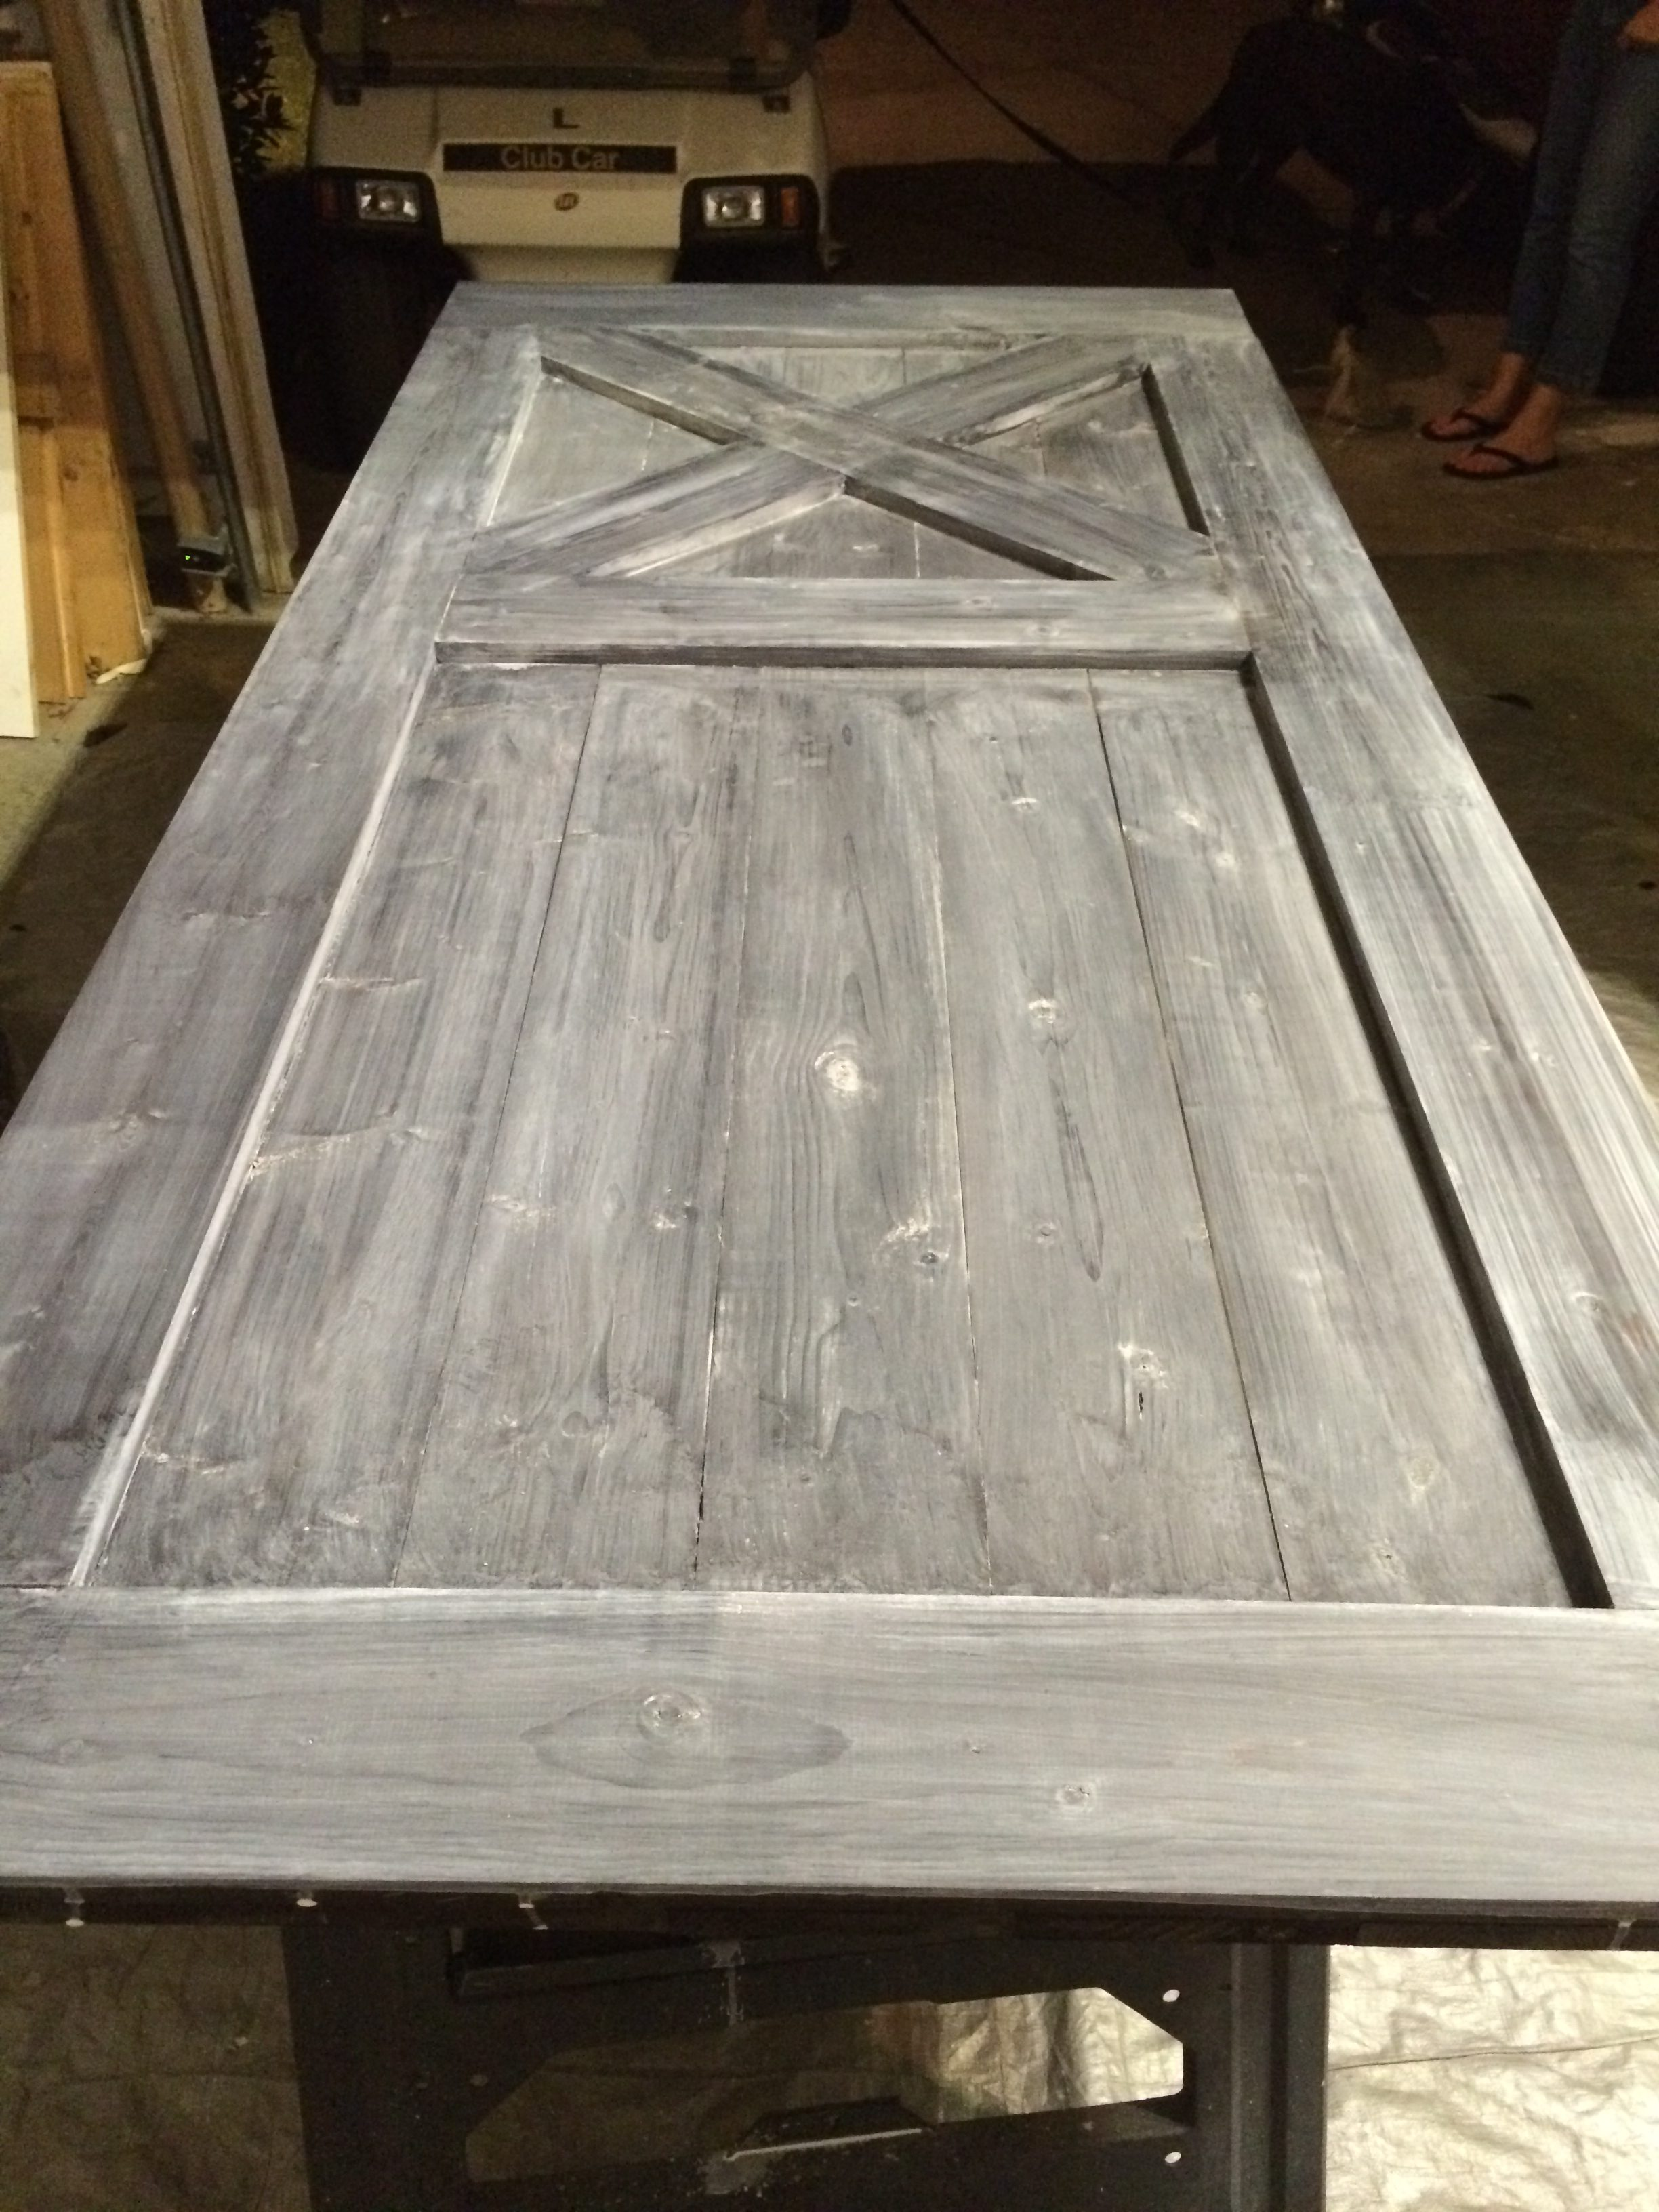 How to Build & Install a Sliding Barn Door - Building Our Rez